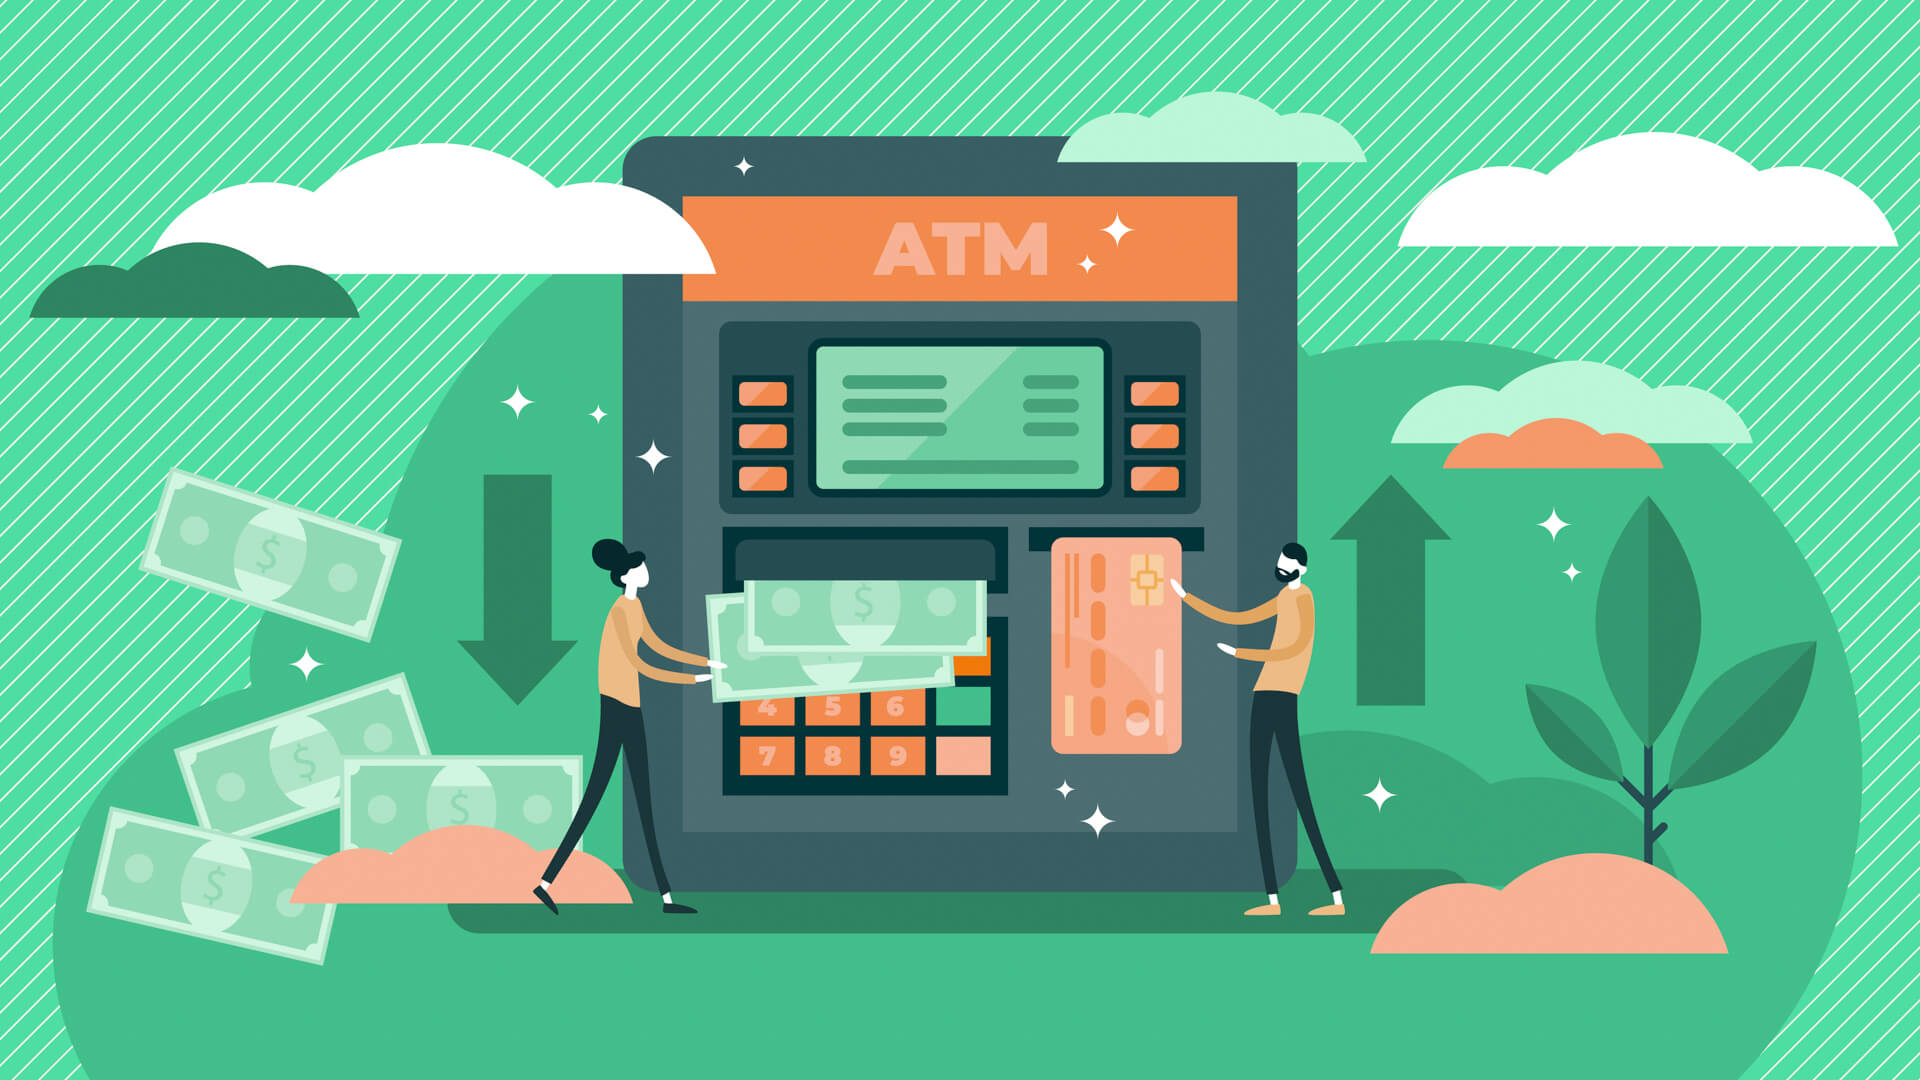 ATM cash machine vector illustration.